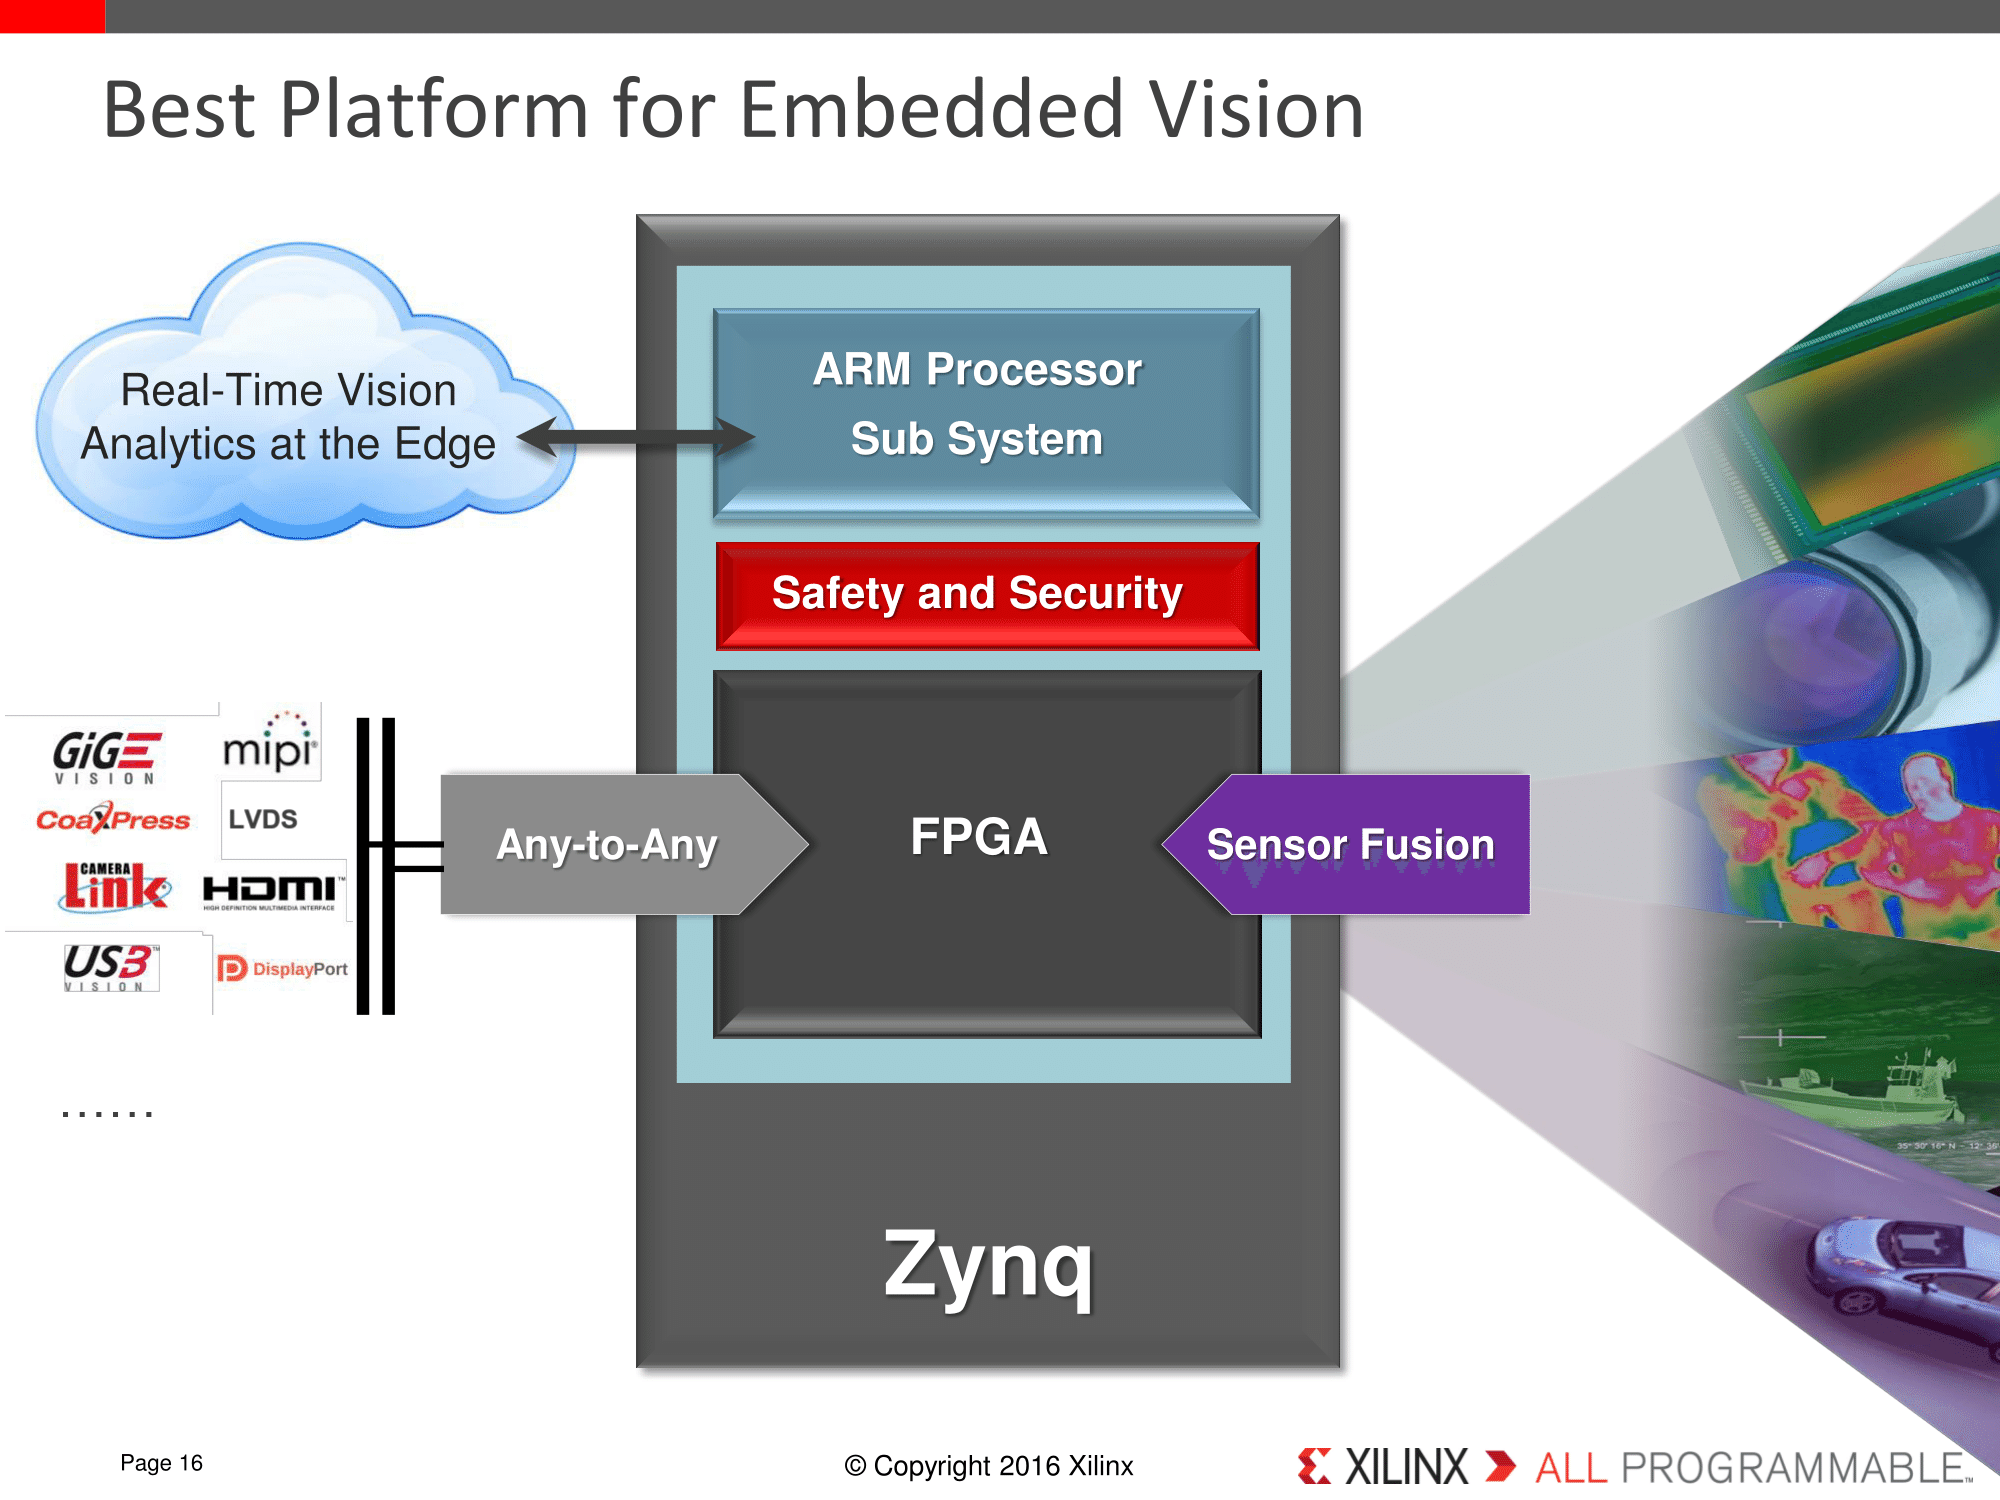 Xilinx Launches Cost-Optimized Portfolio: New Spartan, Artix and